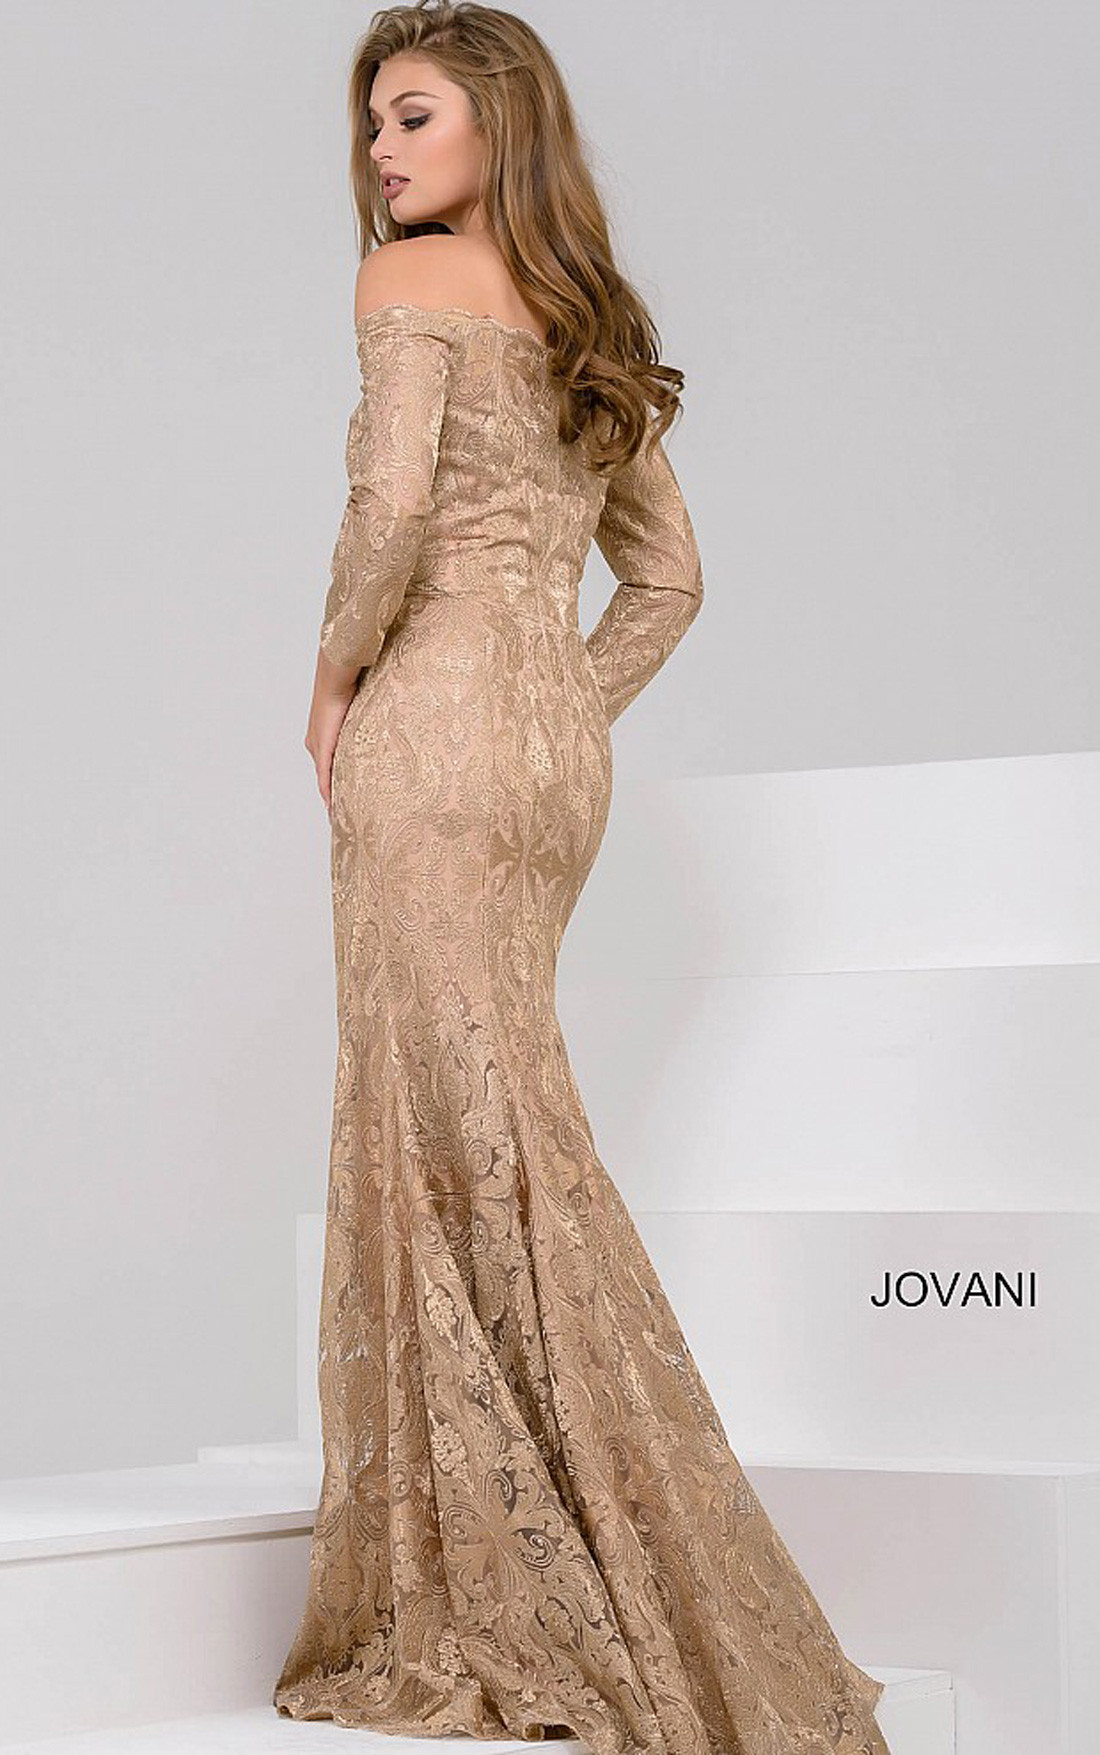 Jovani - Gold Bardot Dress (40945)